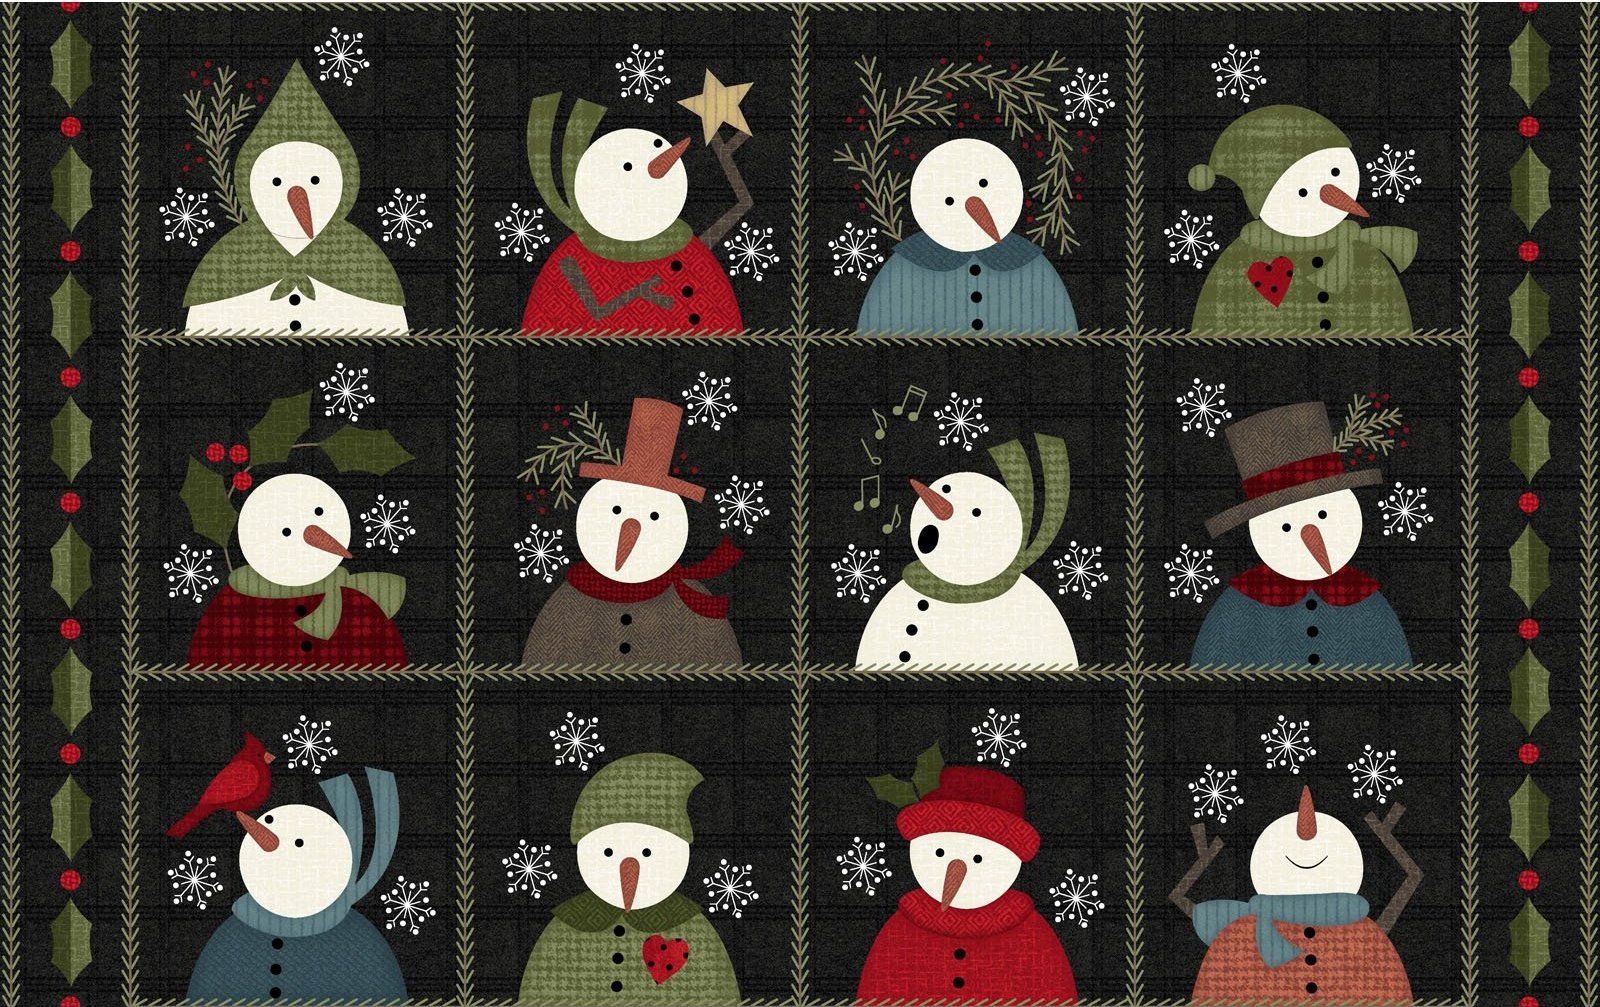 EESC-F9930 JK - SNOWDAYS FLANNEL BY BONNIE SULLIVAN SNOW SQS 9 CHARCOAL - ARRIVING IN AUGUST 021